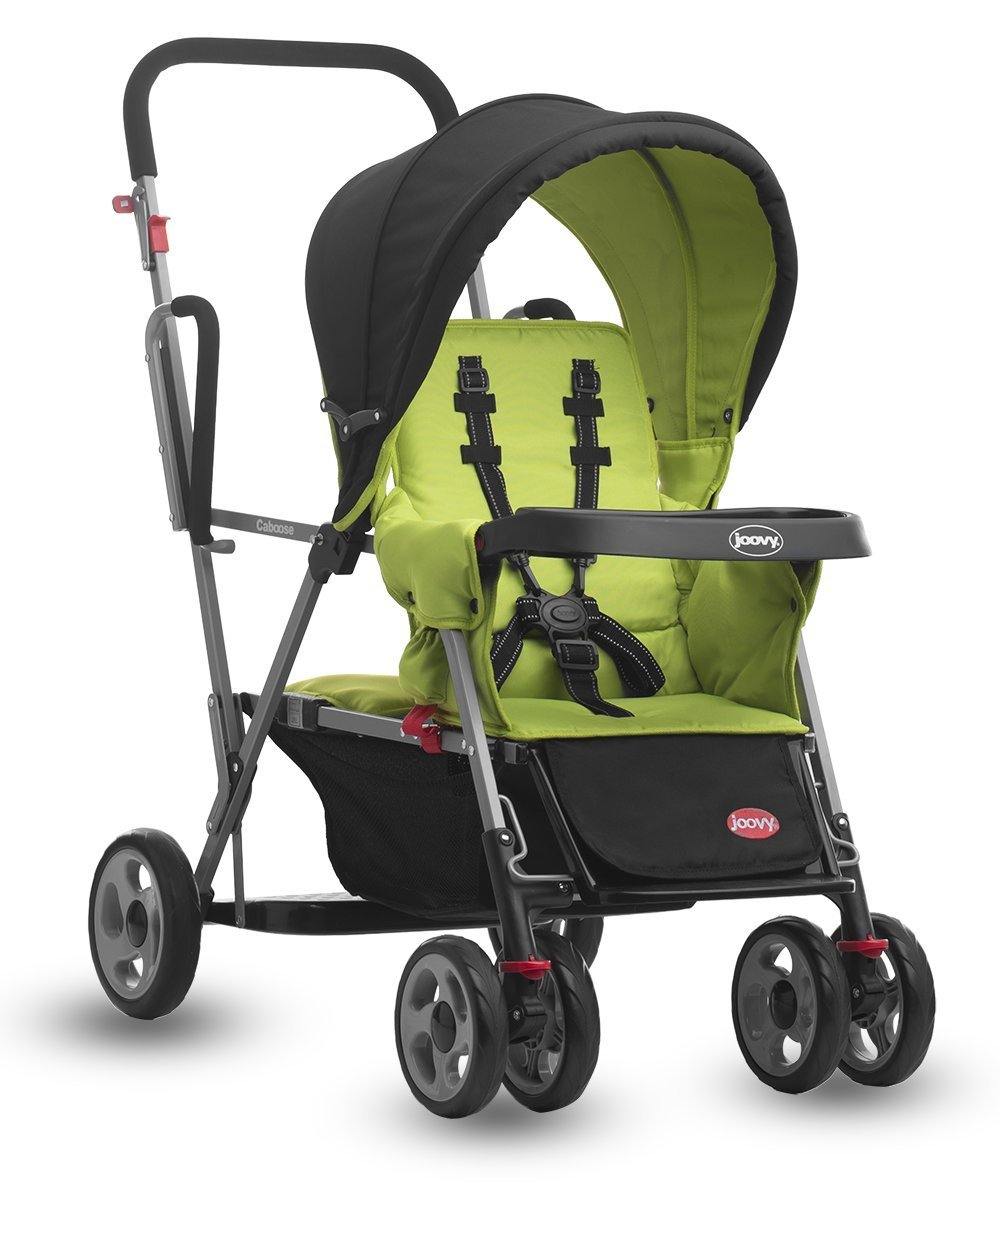 Combi Double Stroller Side By Side Parenting Dreamtimenewfs